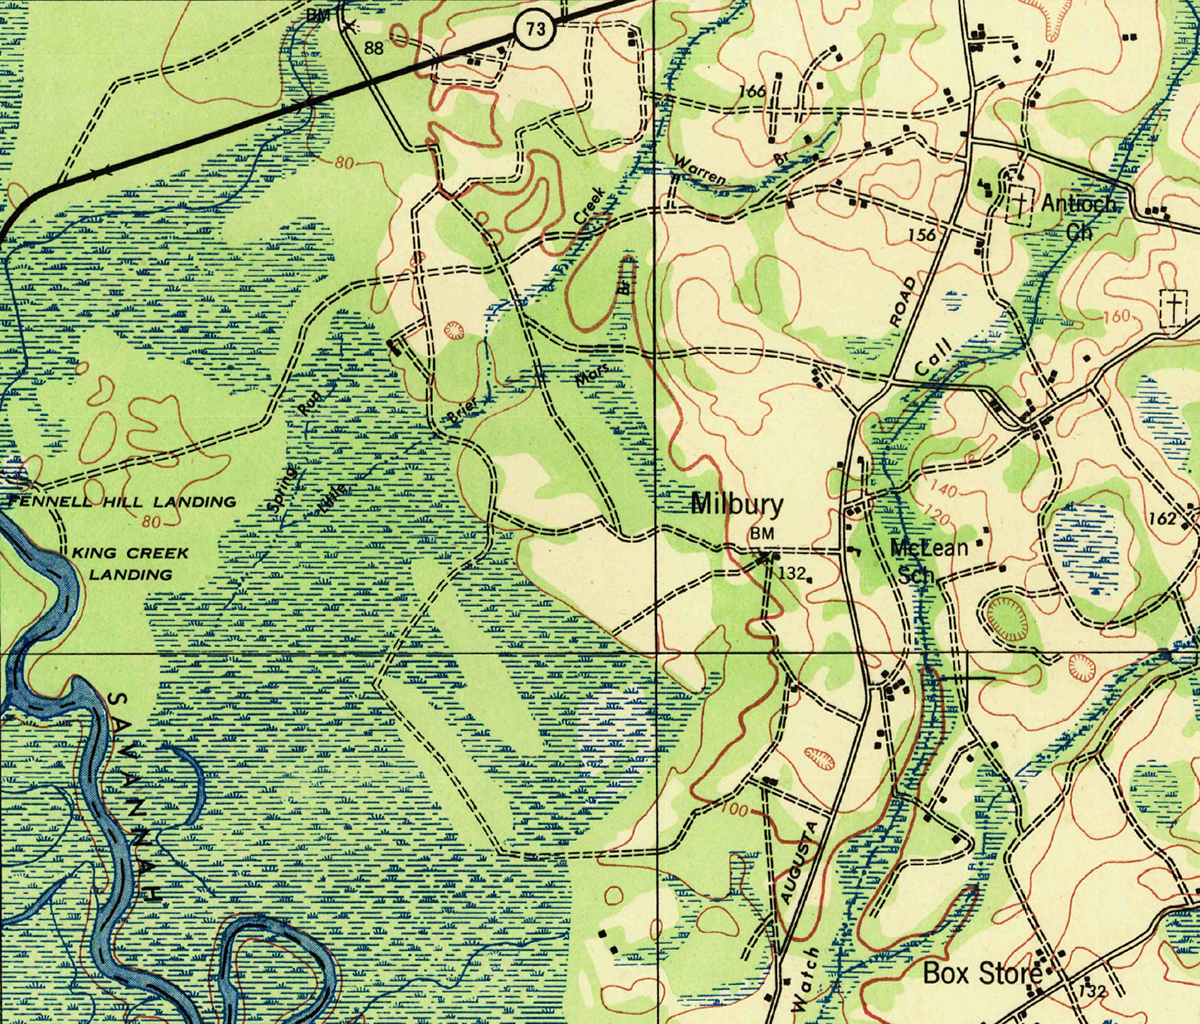 Detail from U.S. Geological Survey. Peeples quadrangle, South Carolina-Georgia [map]. First Edition 1943. 1:62,500. Reston, Va: United States Department of the Interior, USGS, 2016.